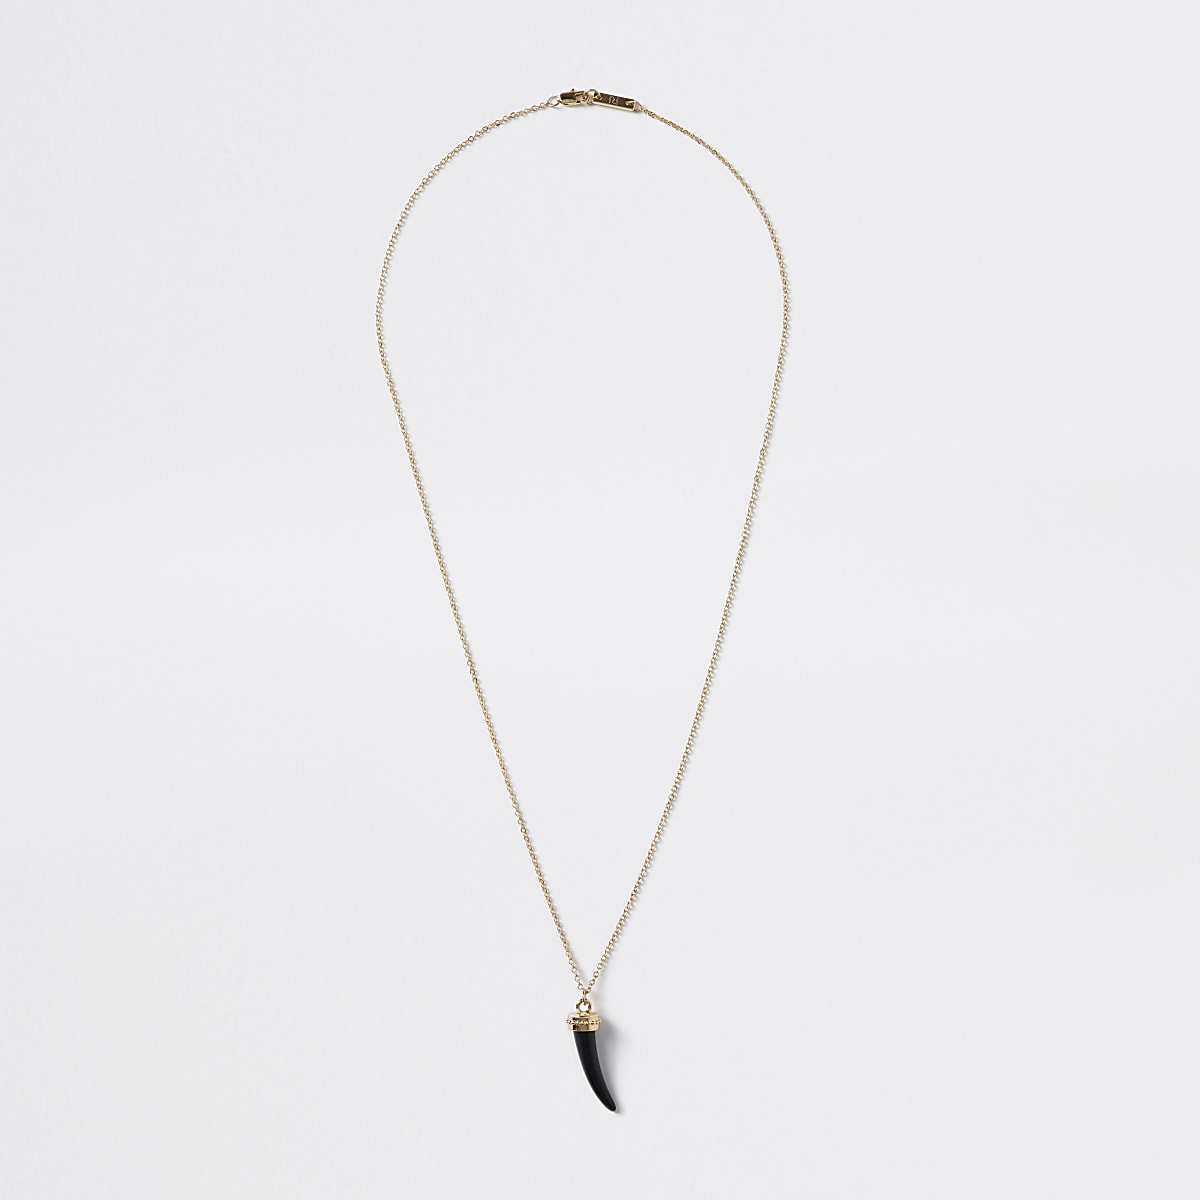 Gold colour black tusk pendant necklace